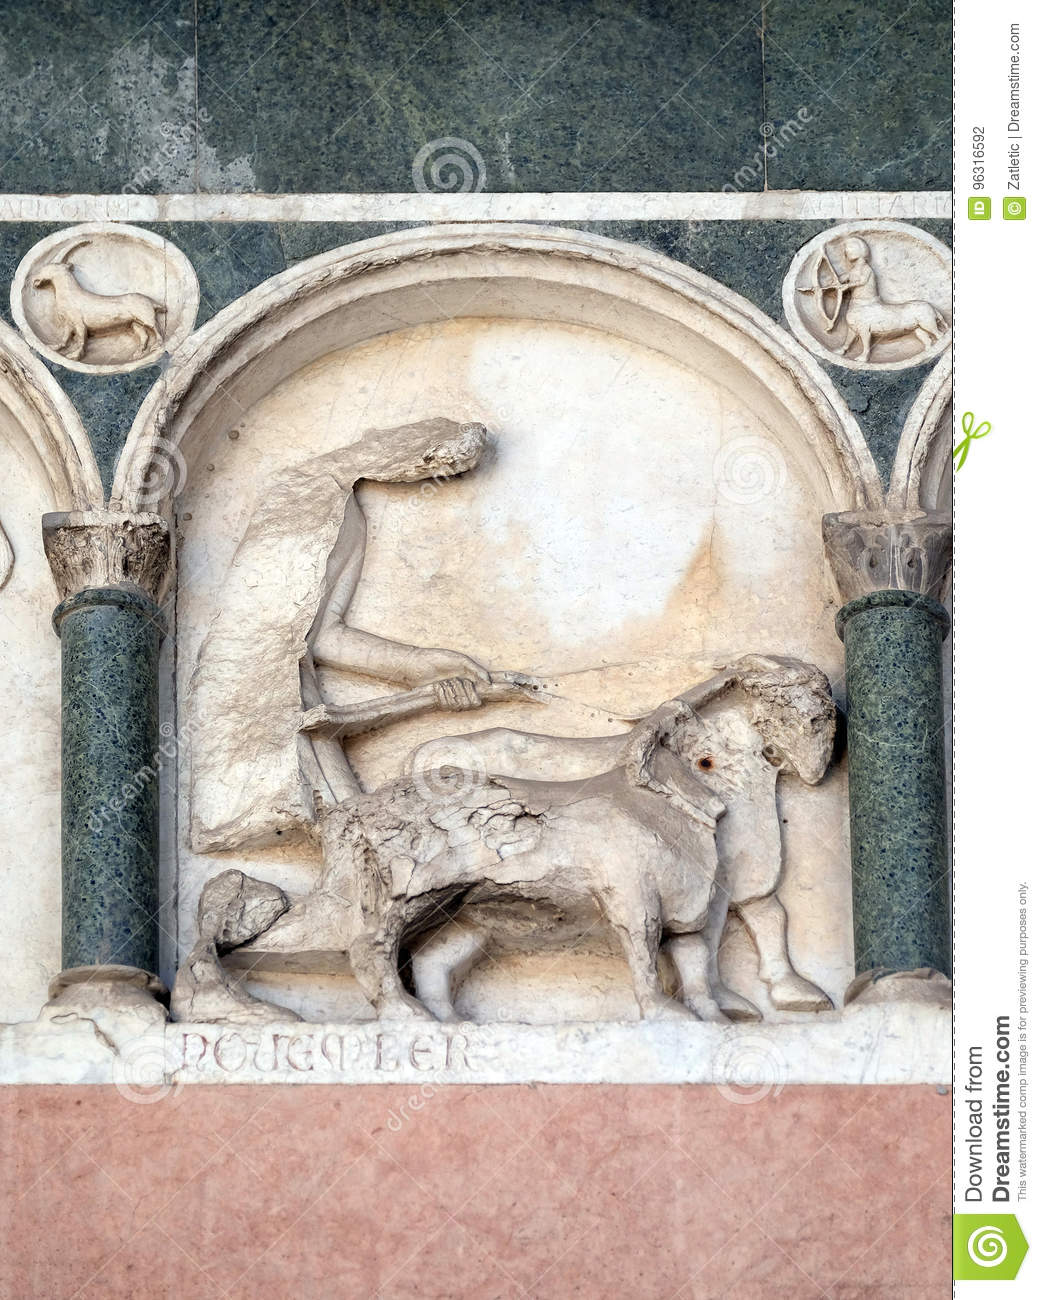 November, detail of the bass-relief representing the Labor of the months of the year, Cathedral in Lucca, Italy